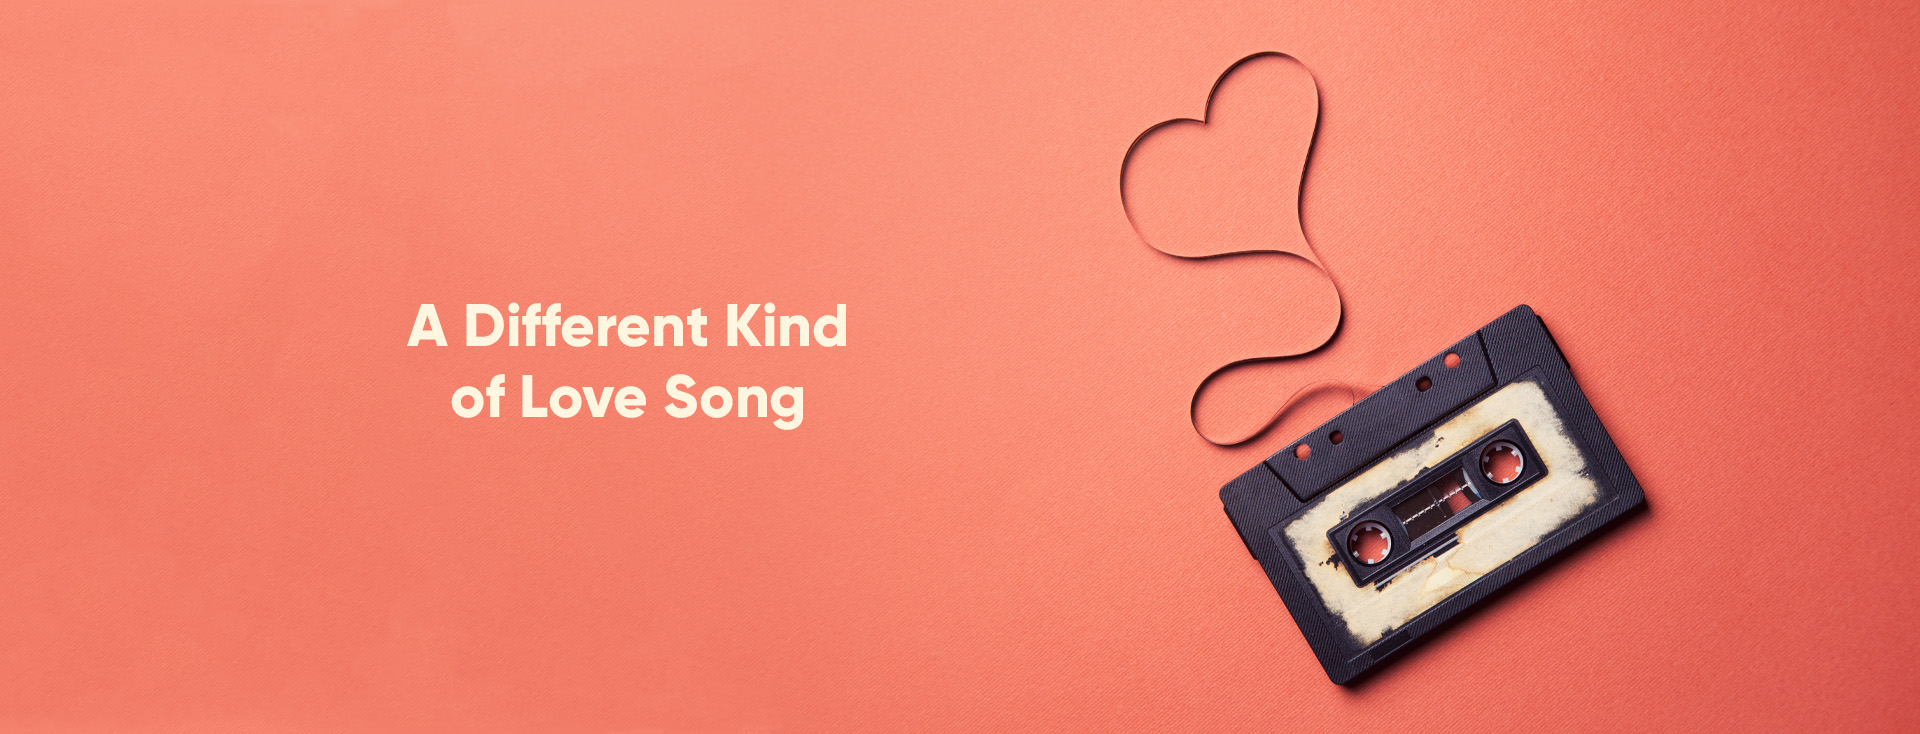 A Different Kind of Love Song